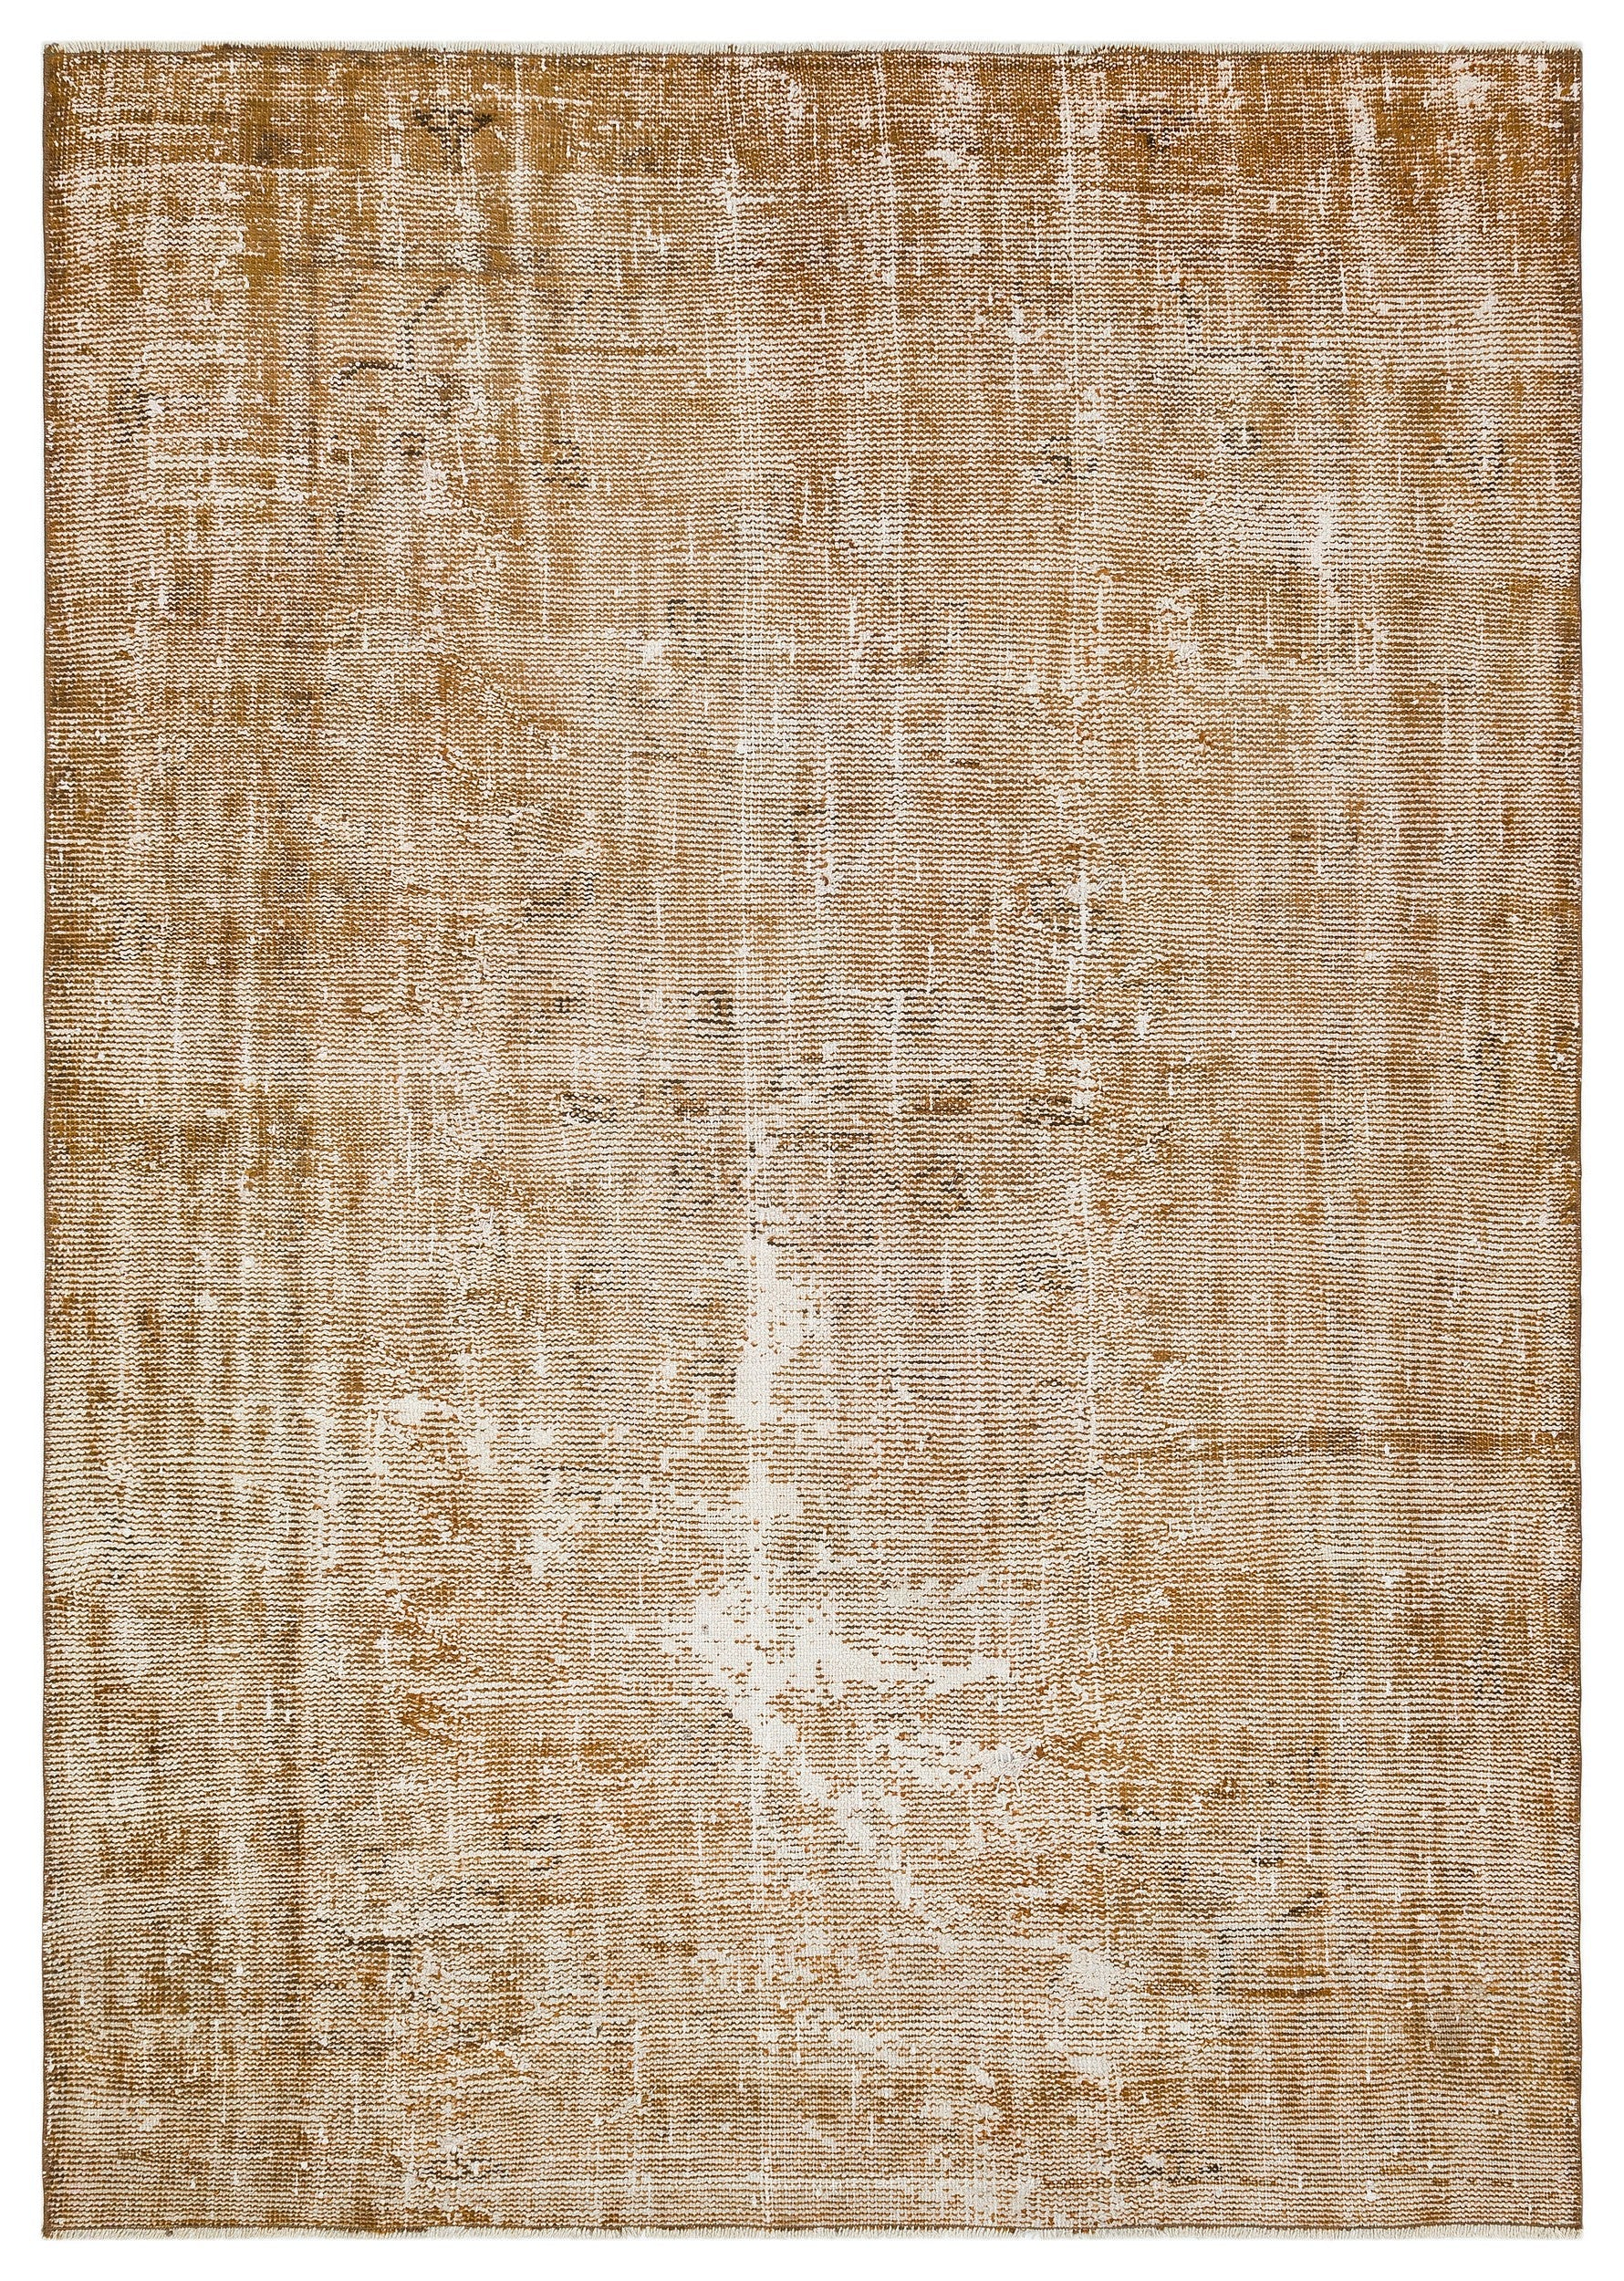 Brown Over Dyed Vintage Rug 5'6'' x 7'10'' ft 168 x 238 cm